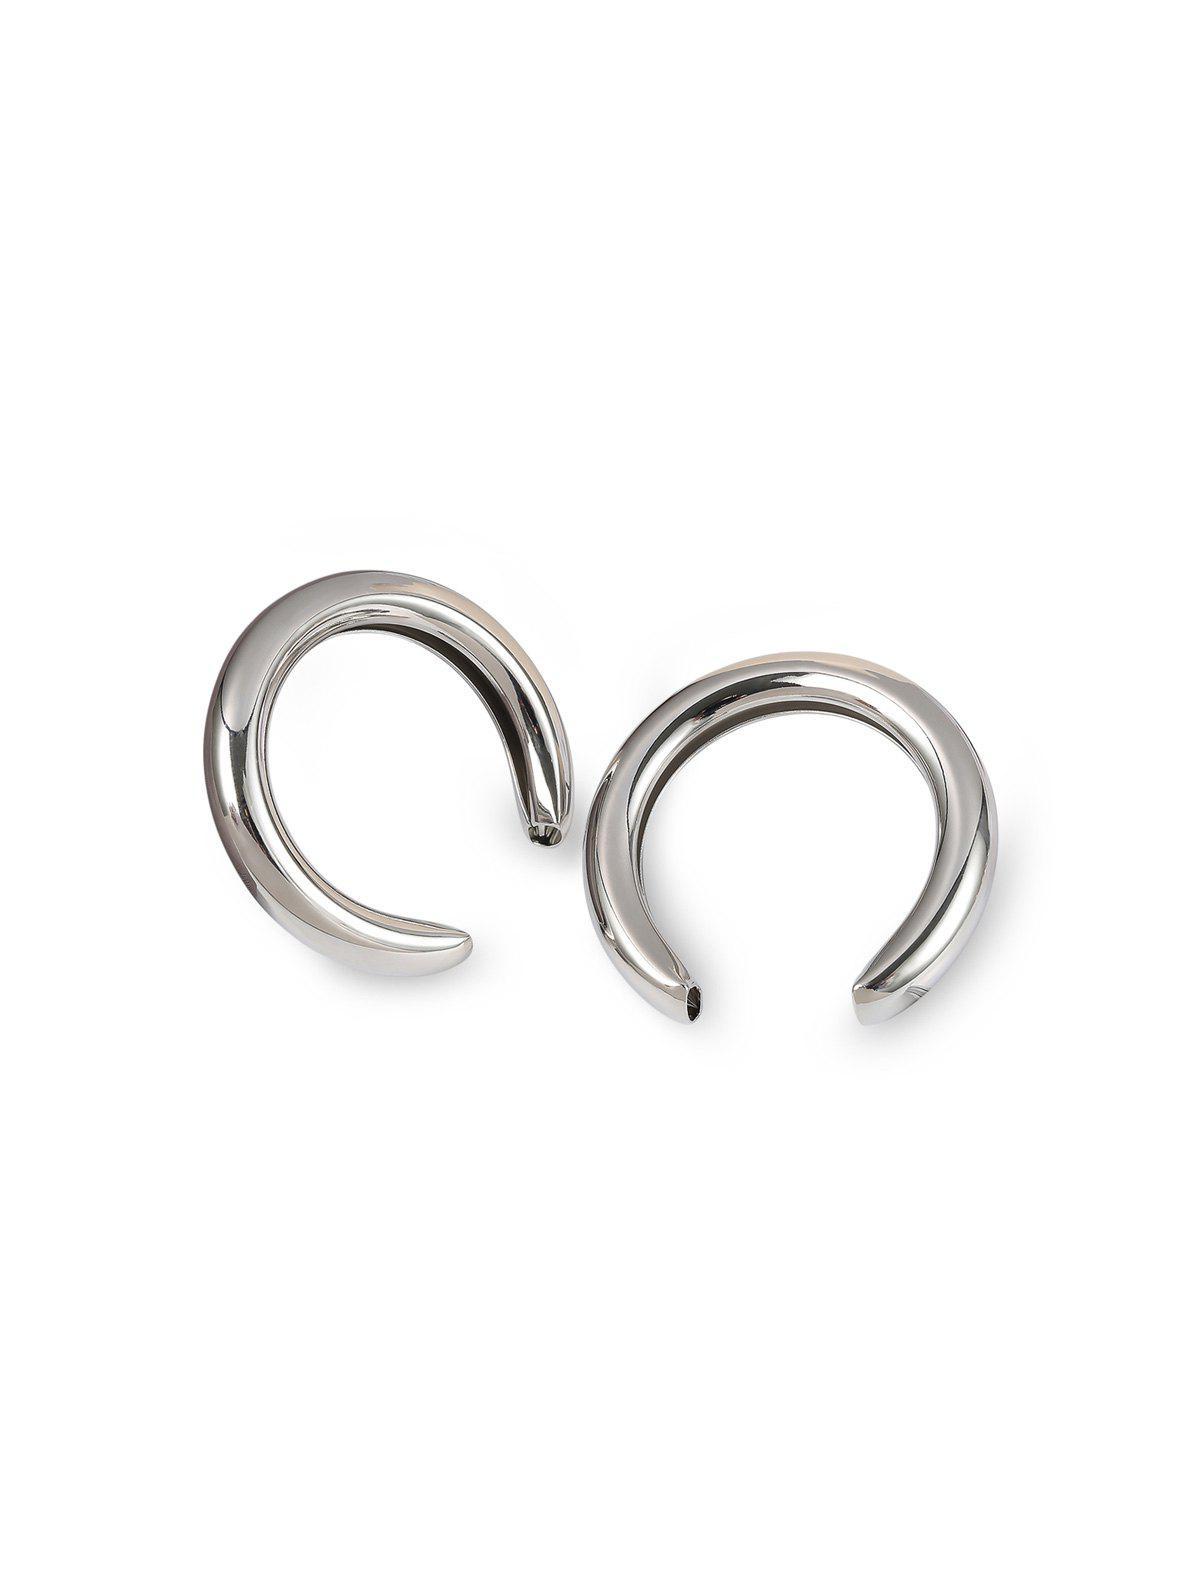 Online Exaggerated Crescent Moon Stud Earrings